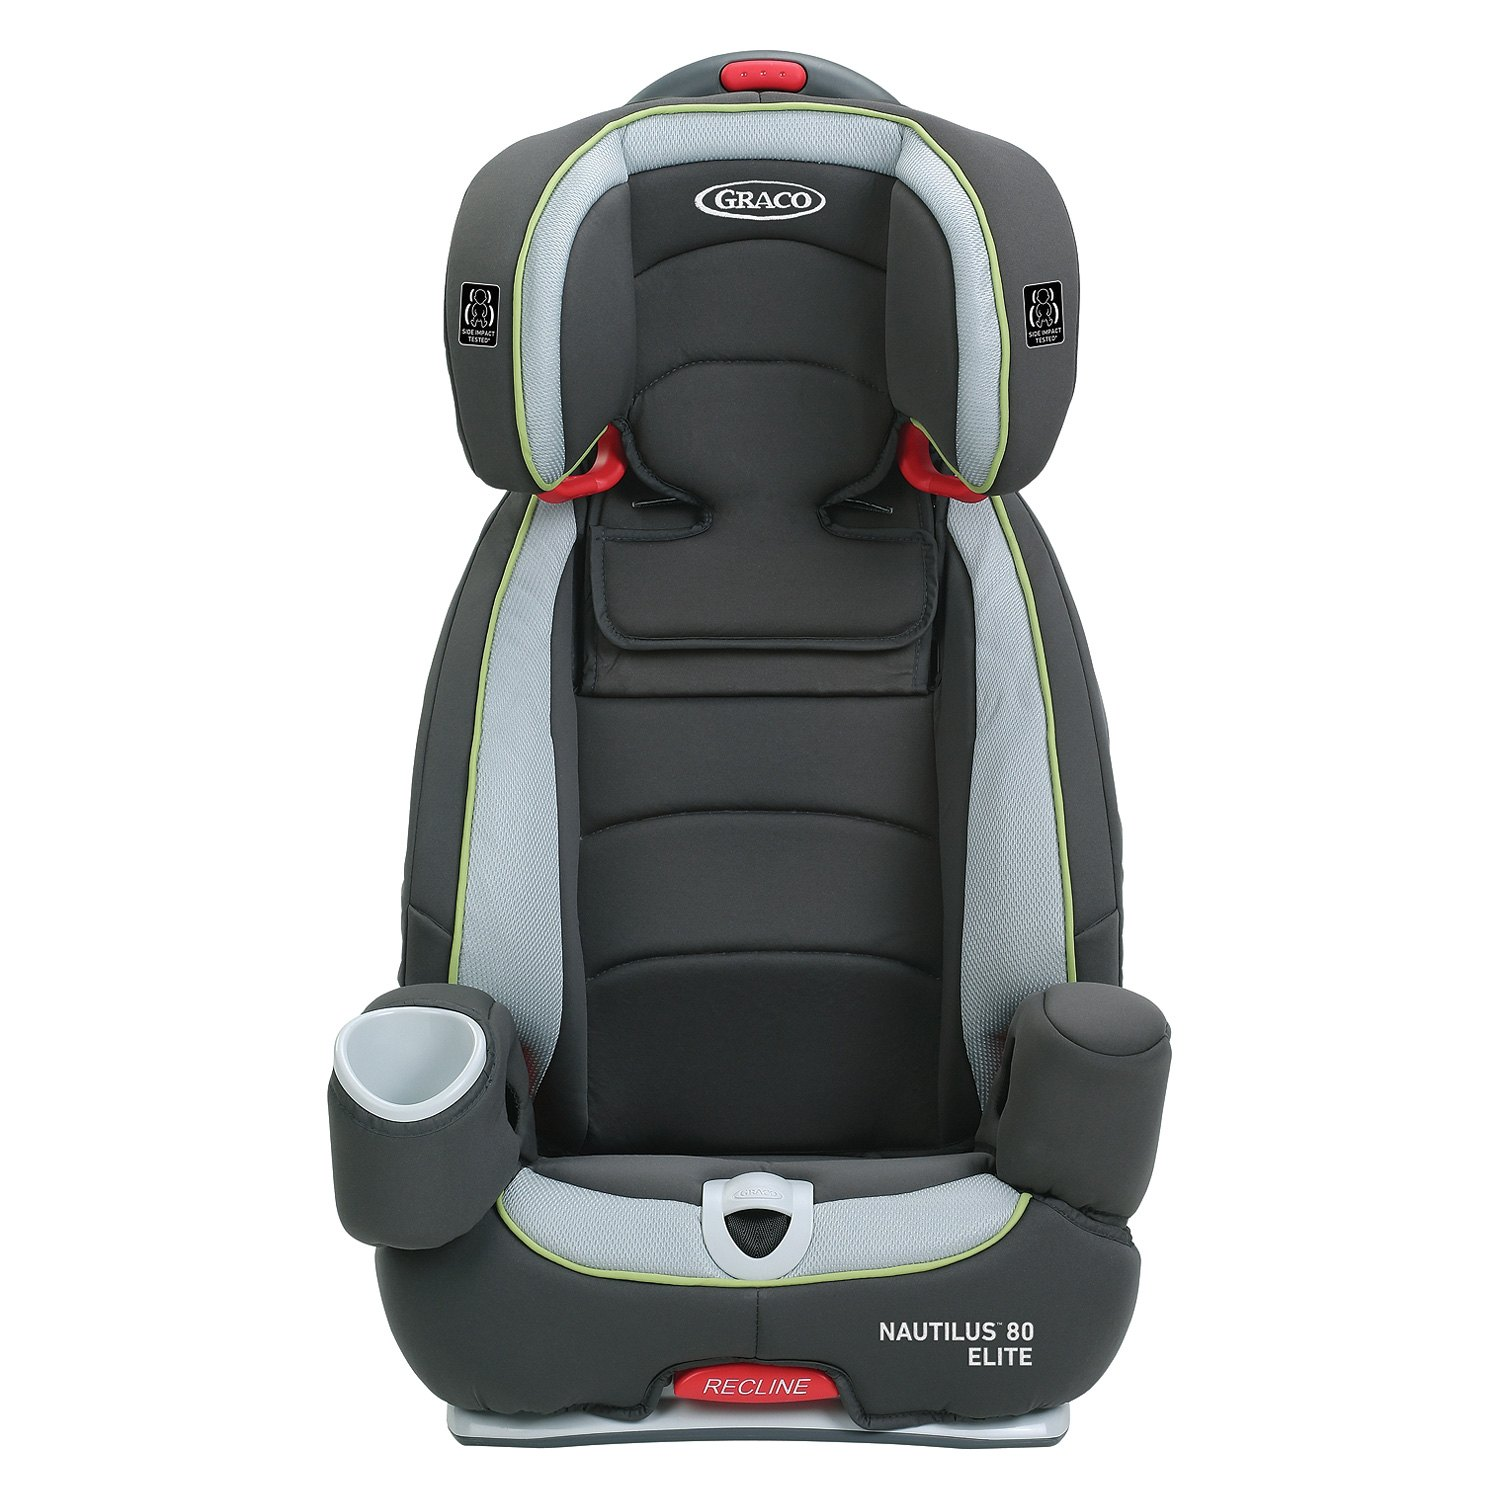 graco baby nautilus 80 elite 3 in 1 car seat. Black Bedroom Furniture Sets. Home Design Ideas